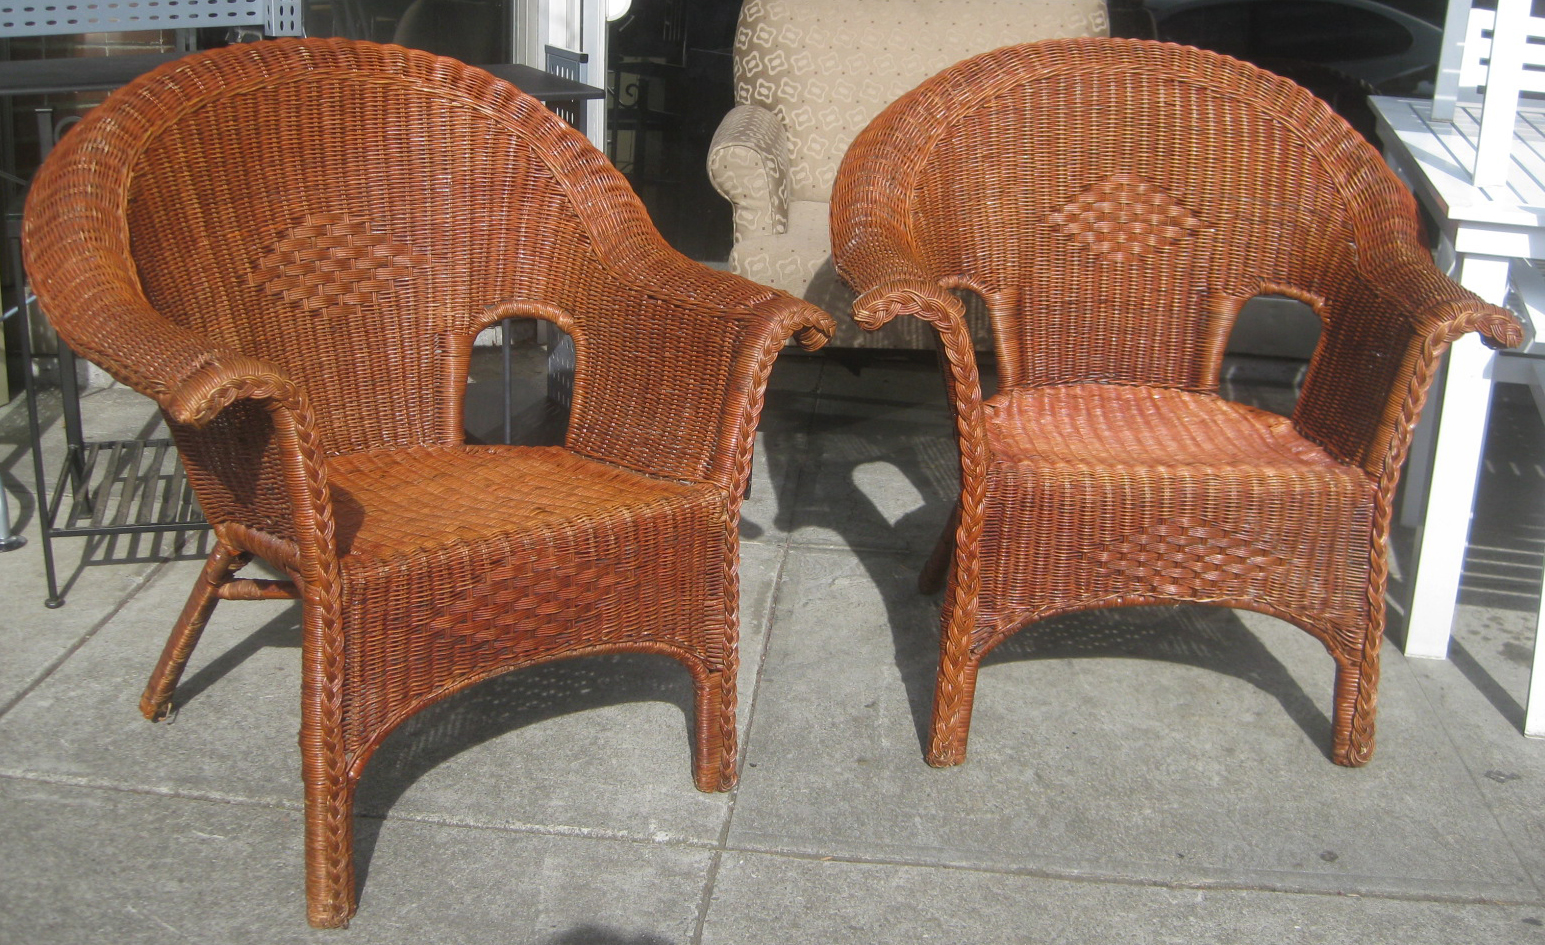 UHURU FURNITURE & COLLECTIBLES SOLD Wicker Patio Chairs $35 each